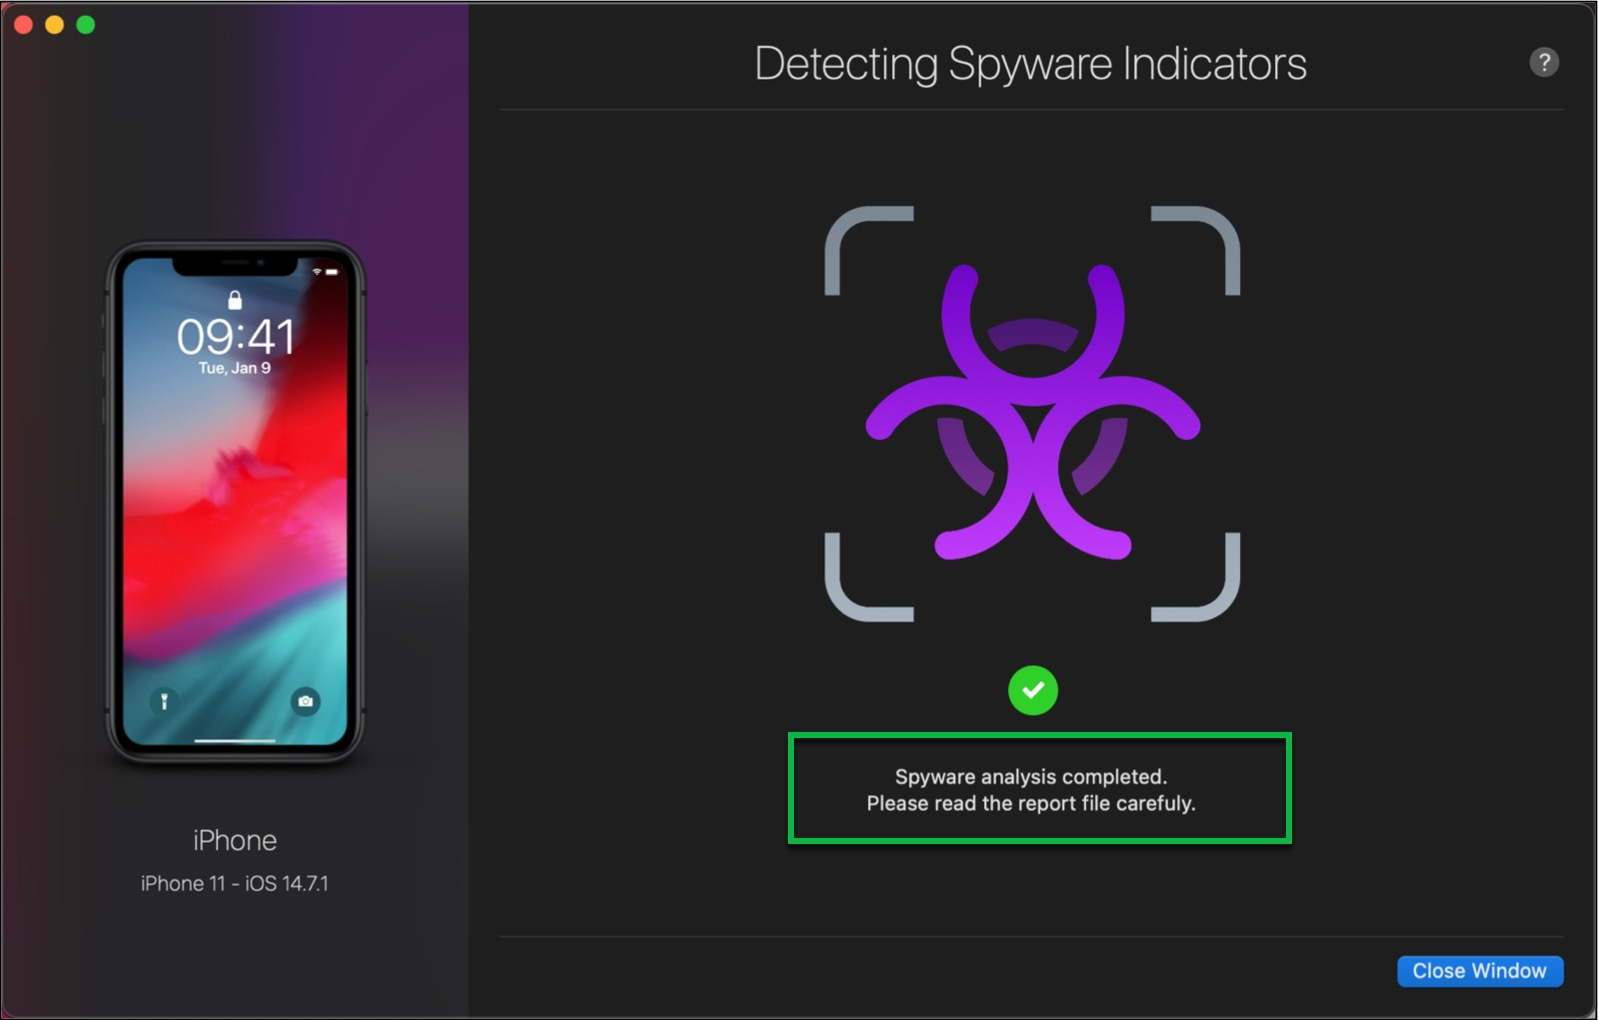 Spyware Analysis Completed